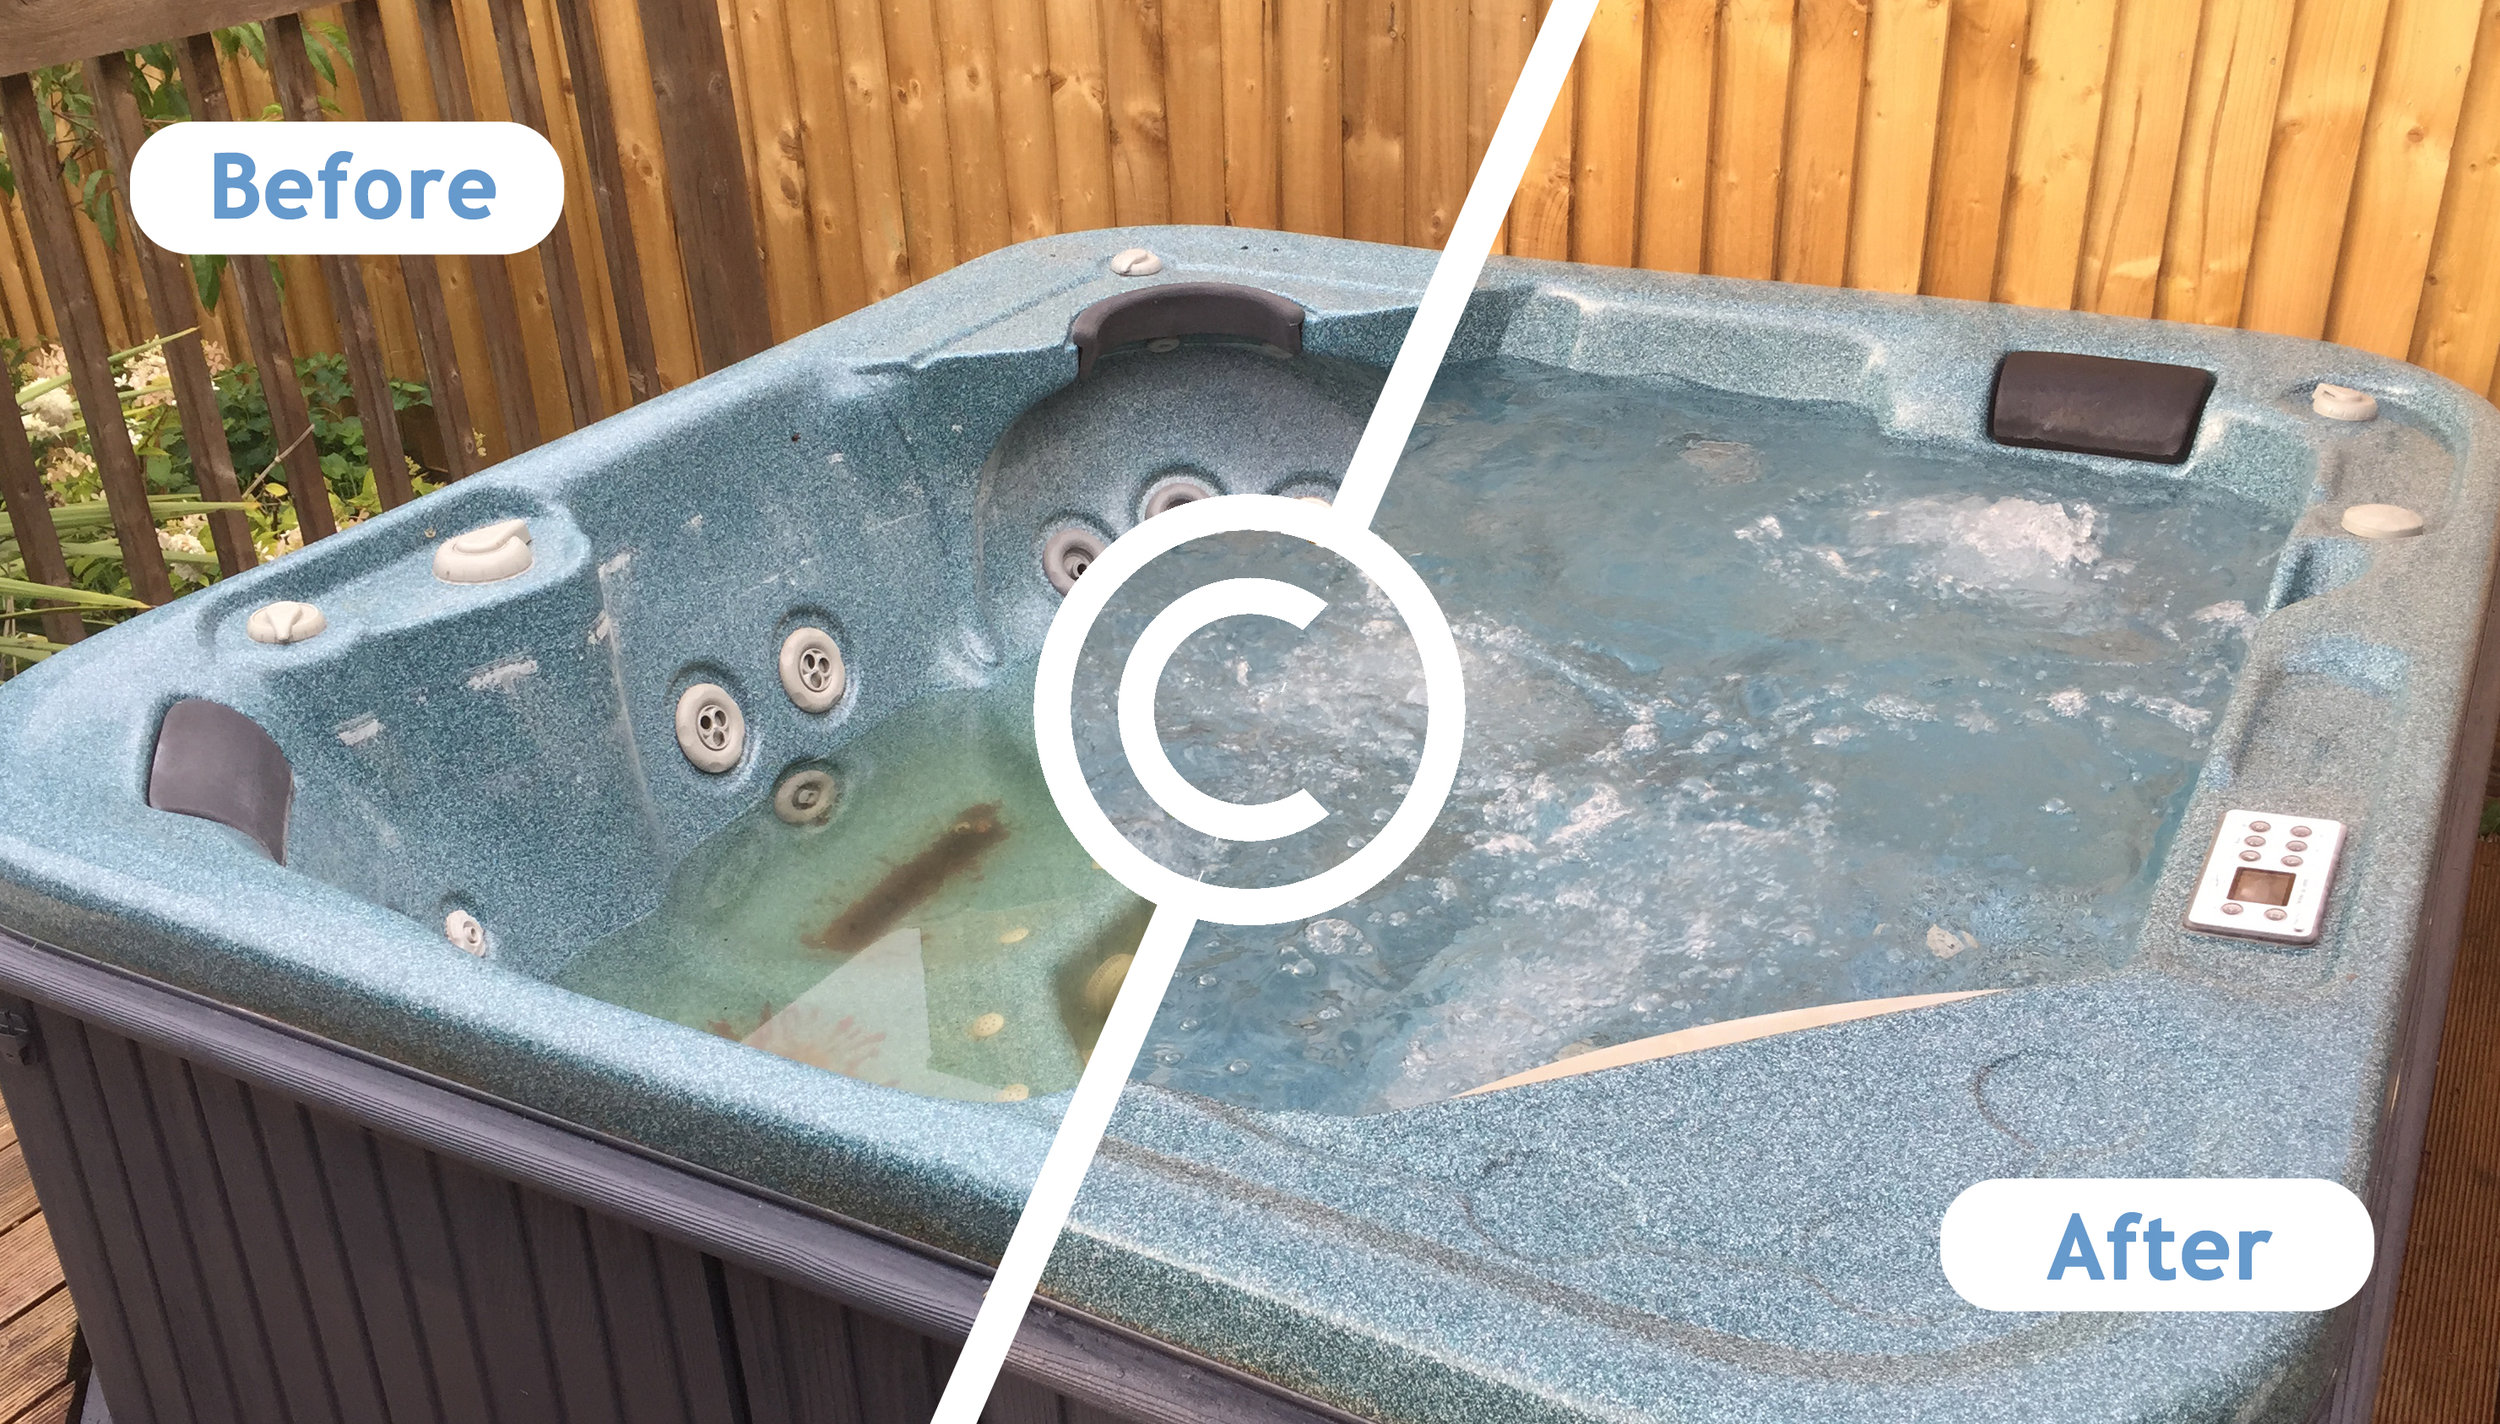 Comprehensive Hot Tub Service Before And After.jpg